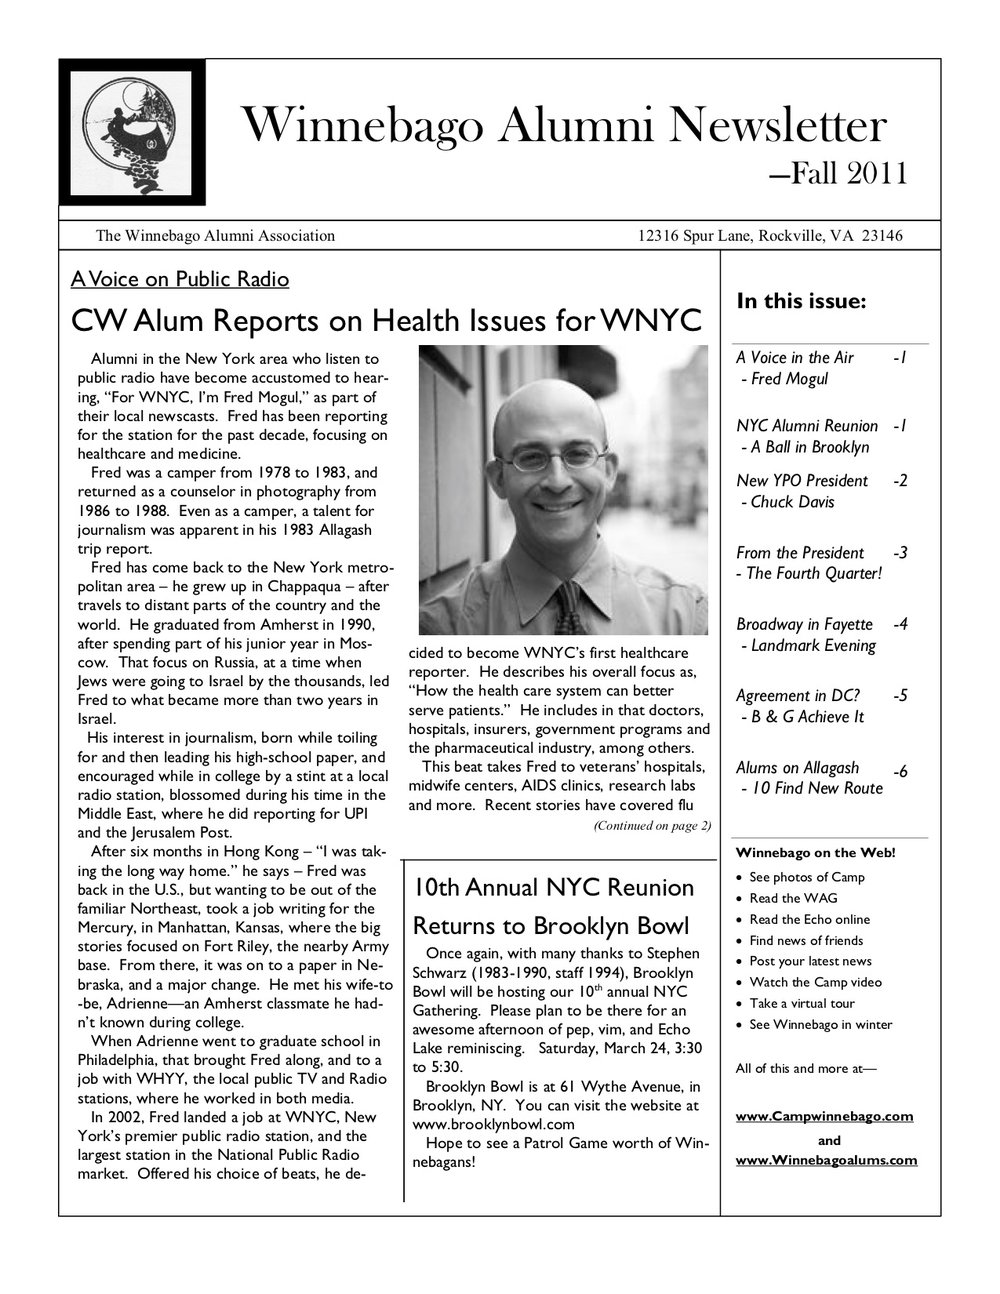 2011 Fall Newsletter.jpg